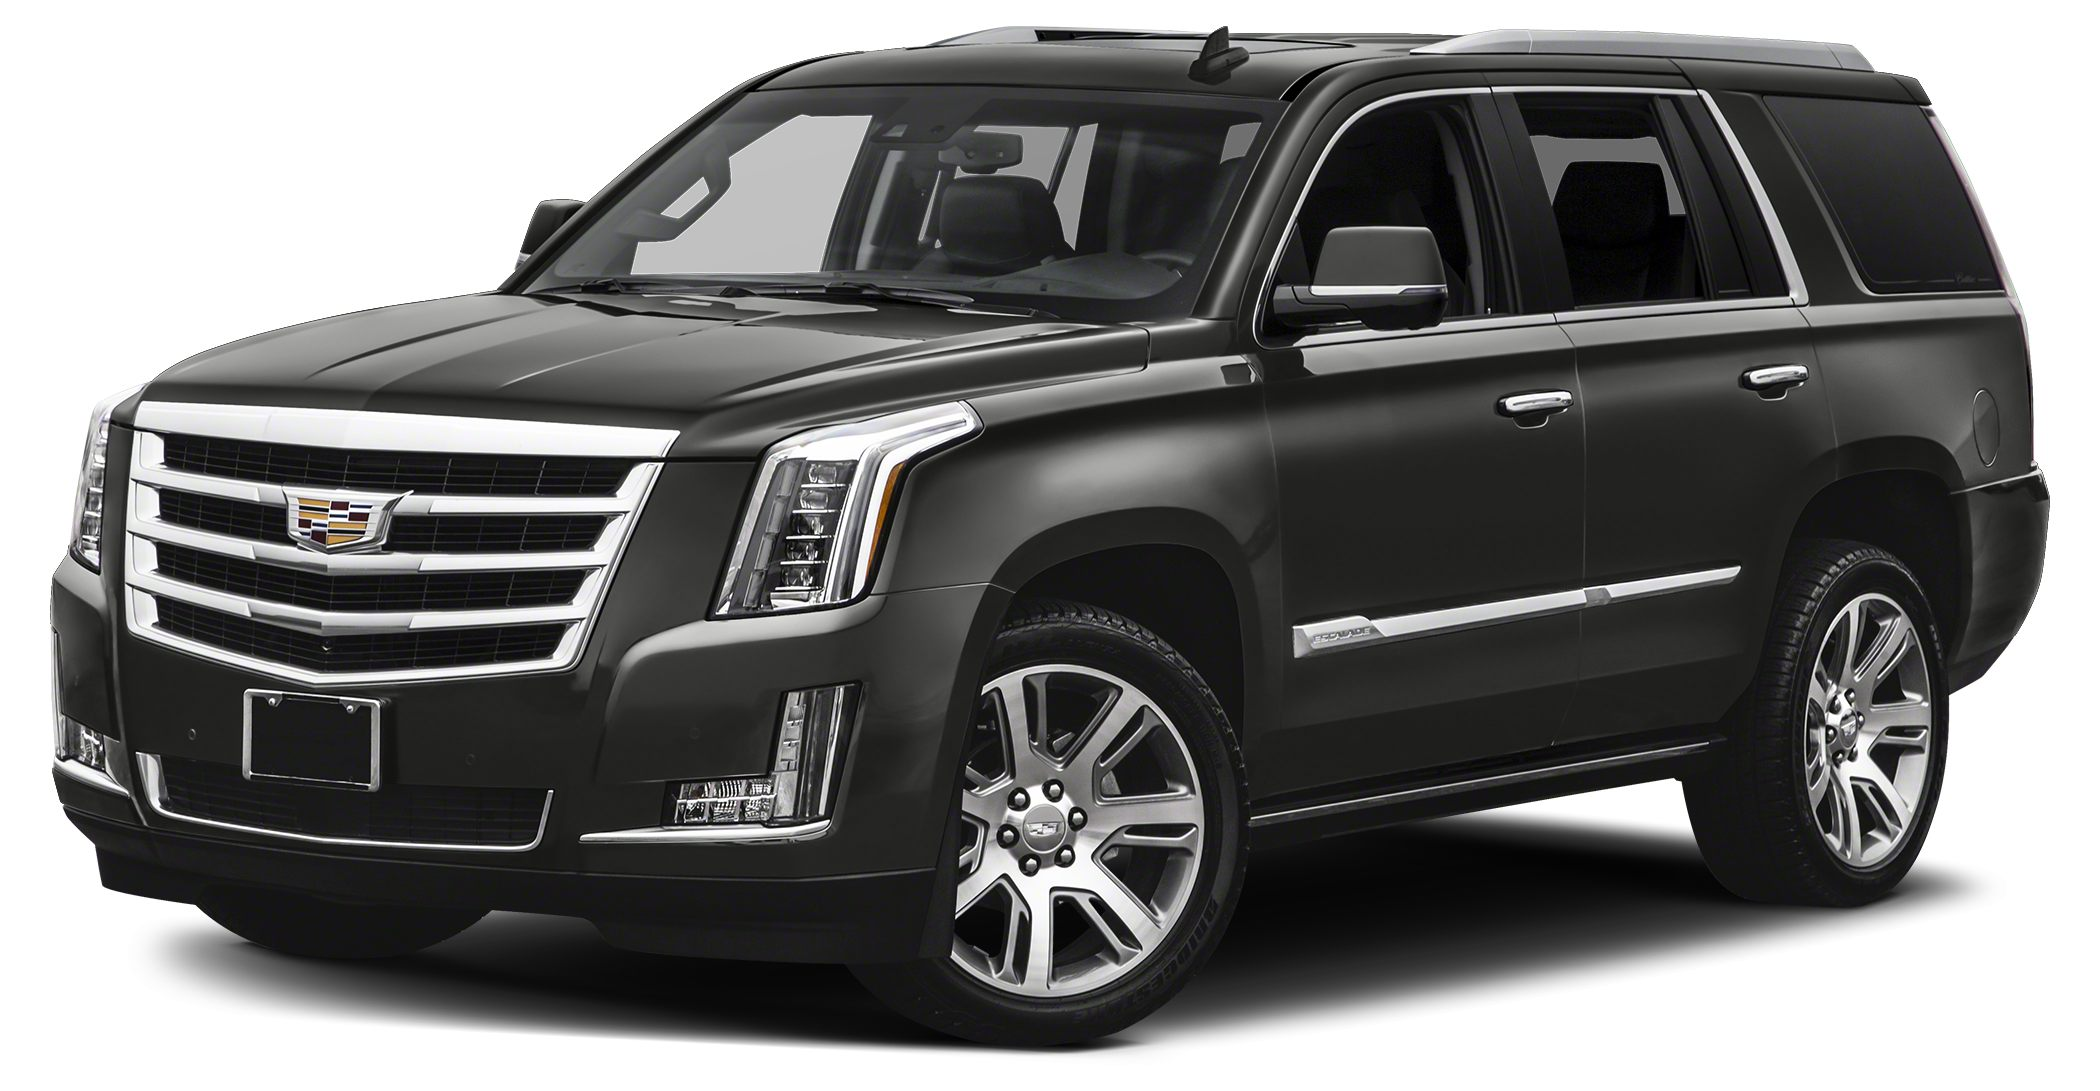 2017 Cadillac Escalade Premium Luxury The well-recognized Escalade has been among the Kings of the